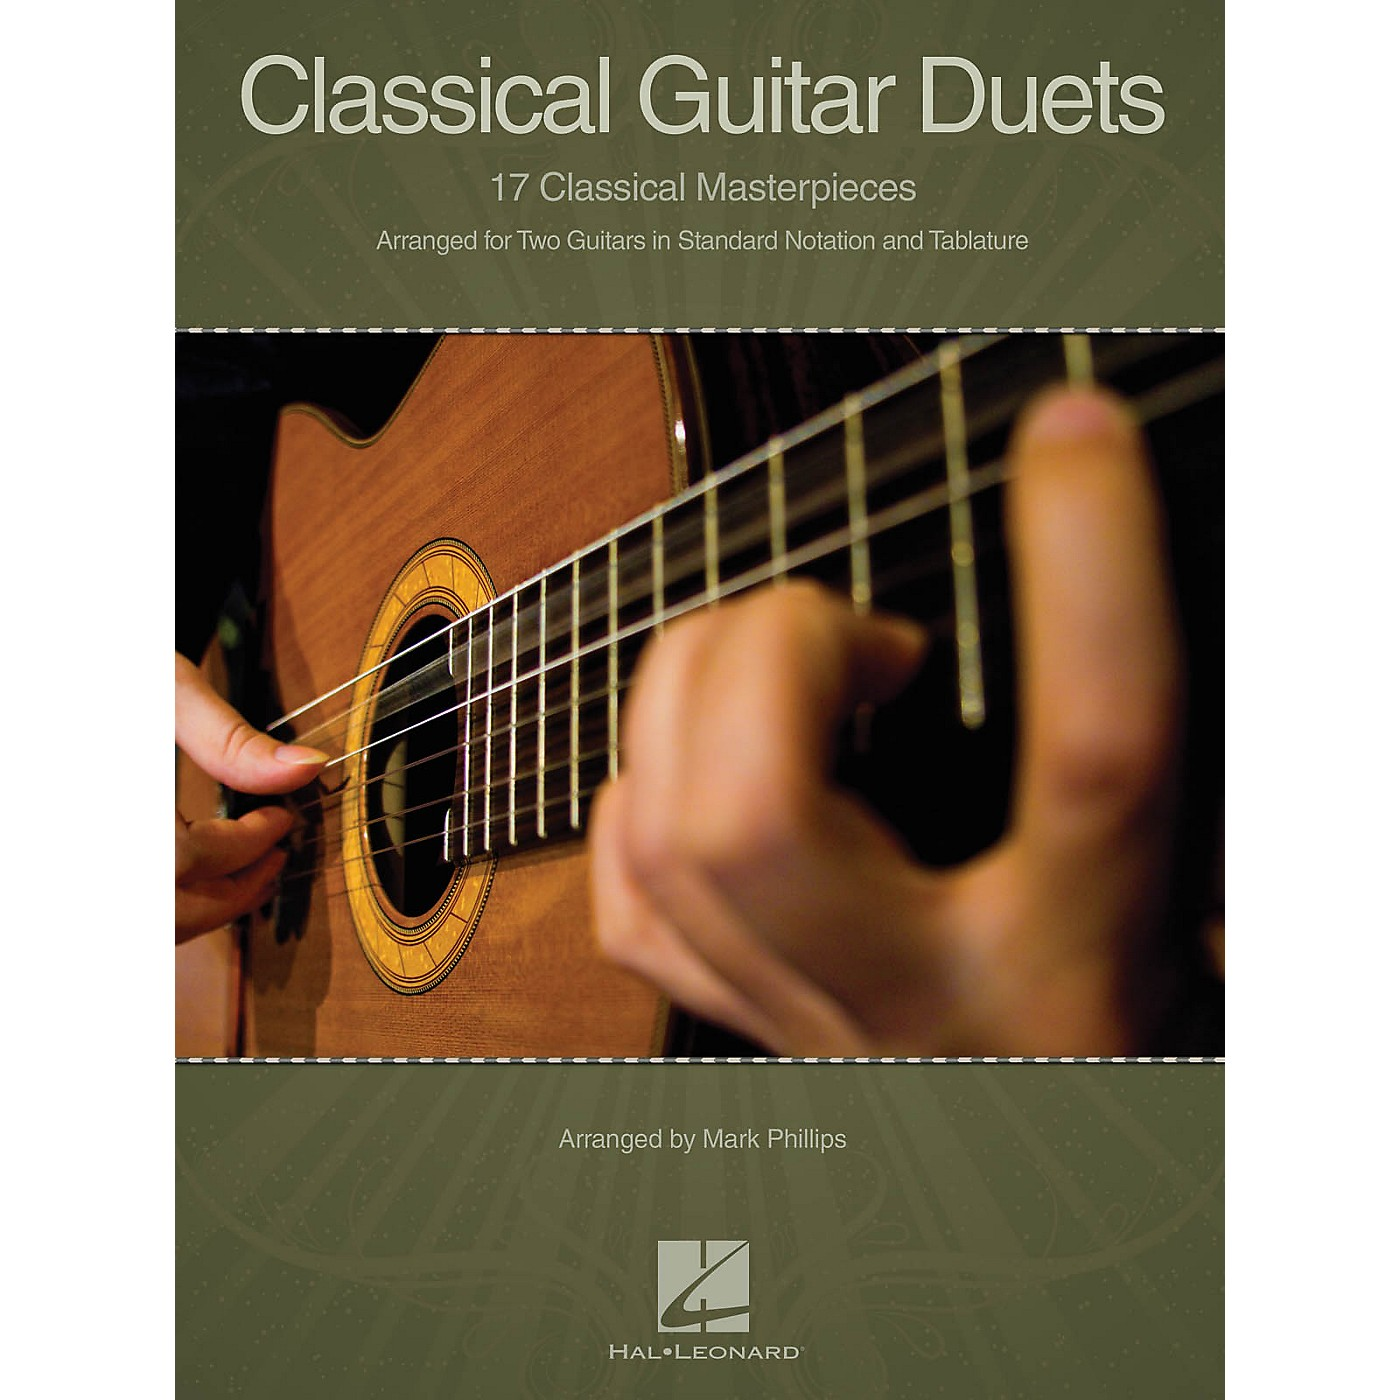 Hal Leonard Classical Guitar Duets (17 Classical Masterpieces) Guitar Collection Series Softcover thumbnail